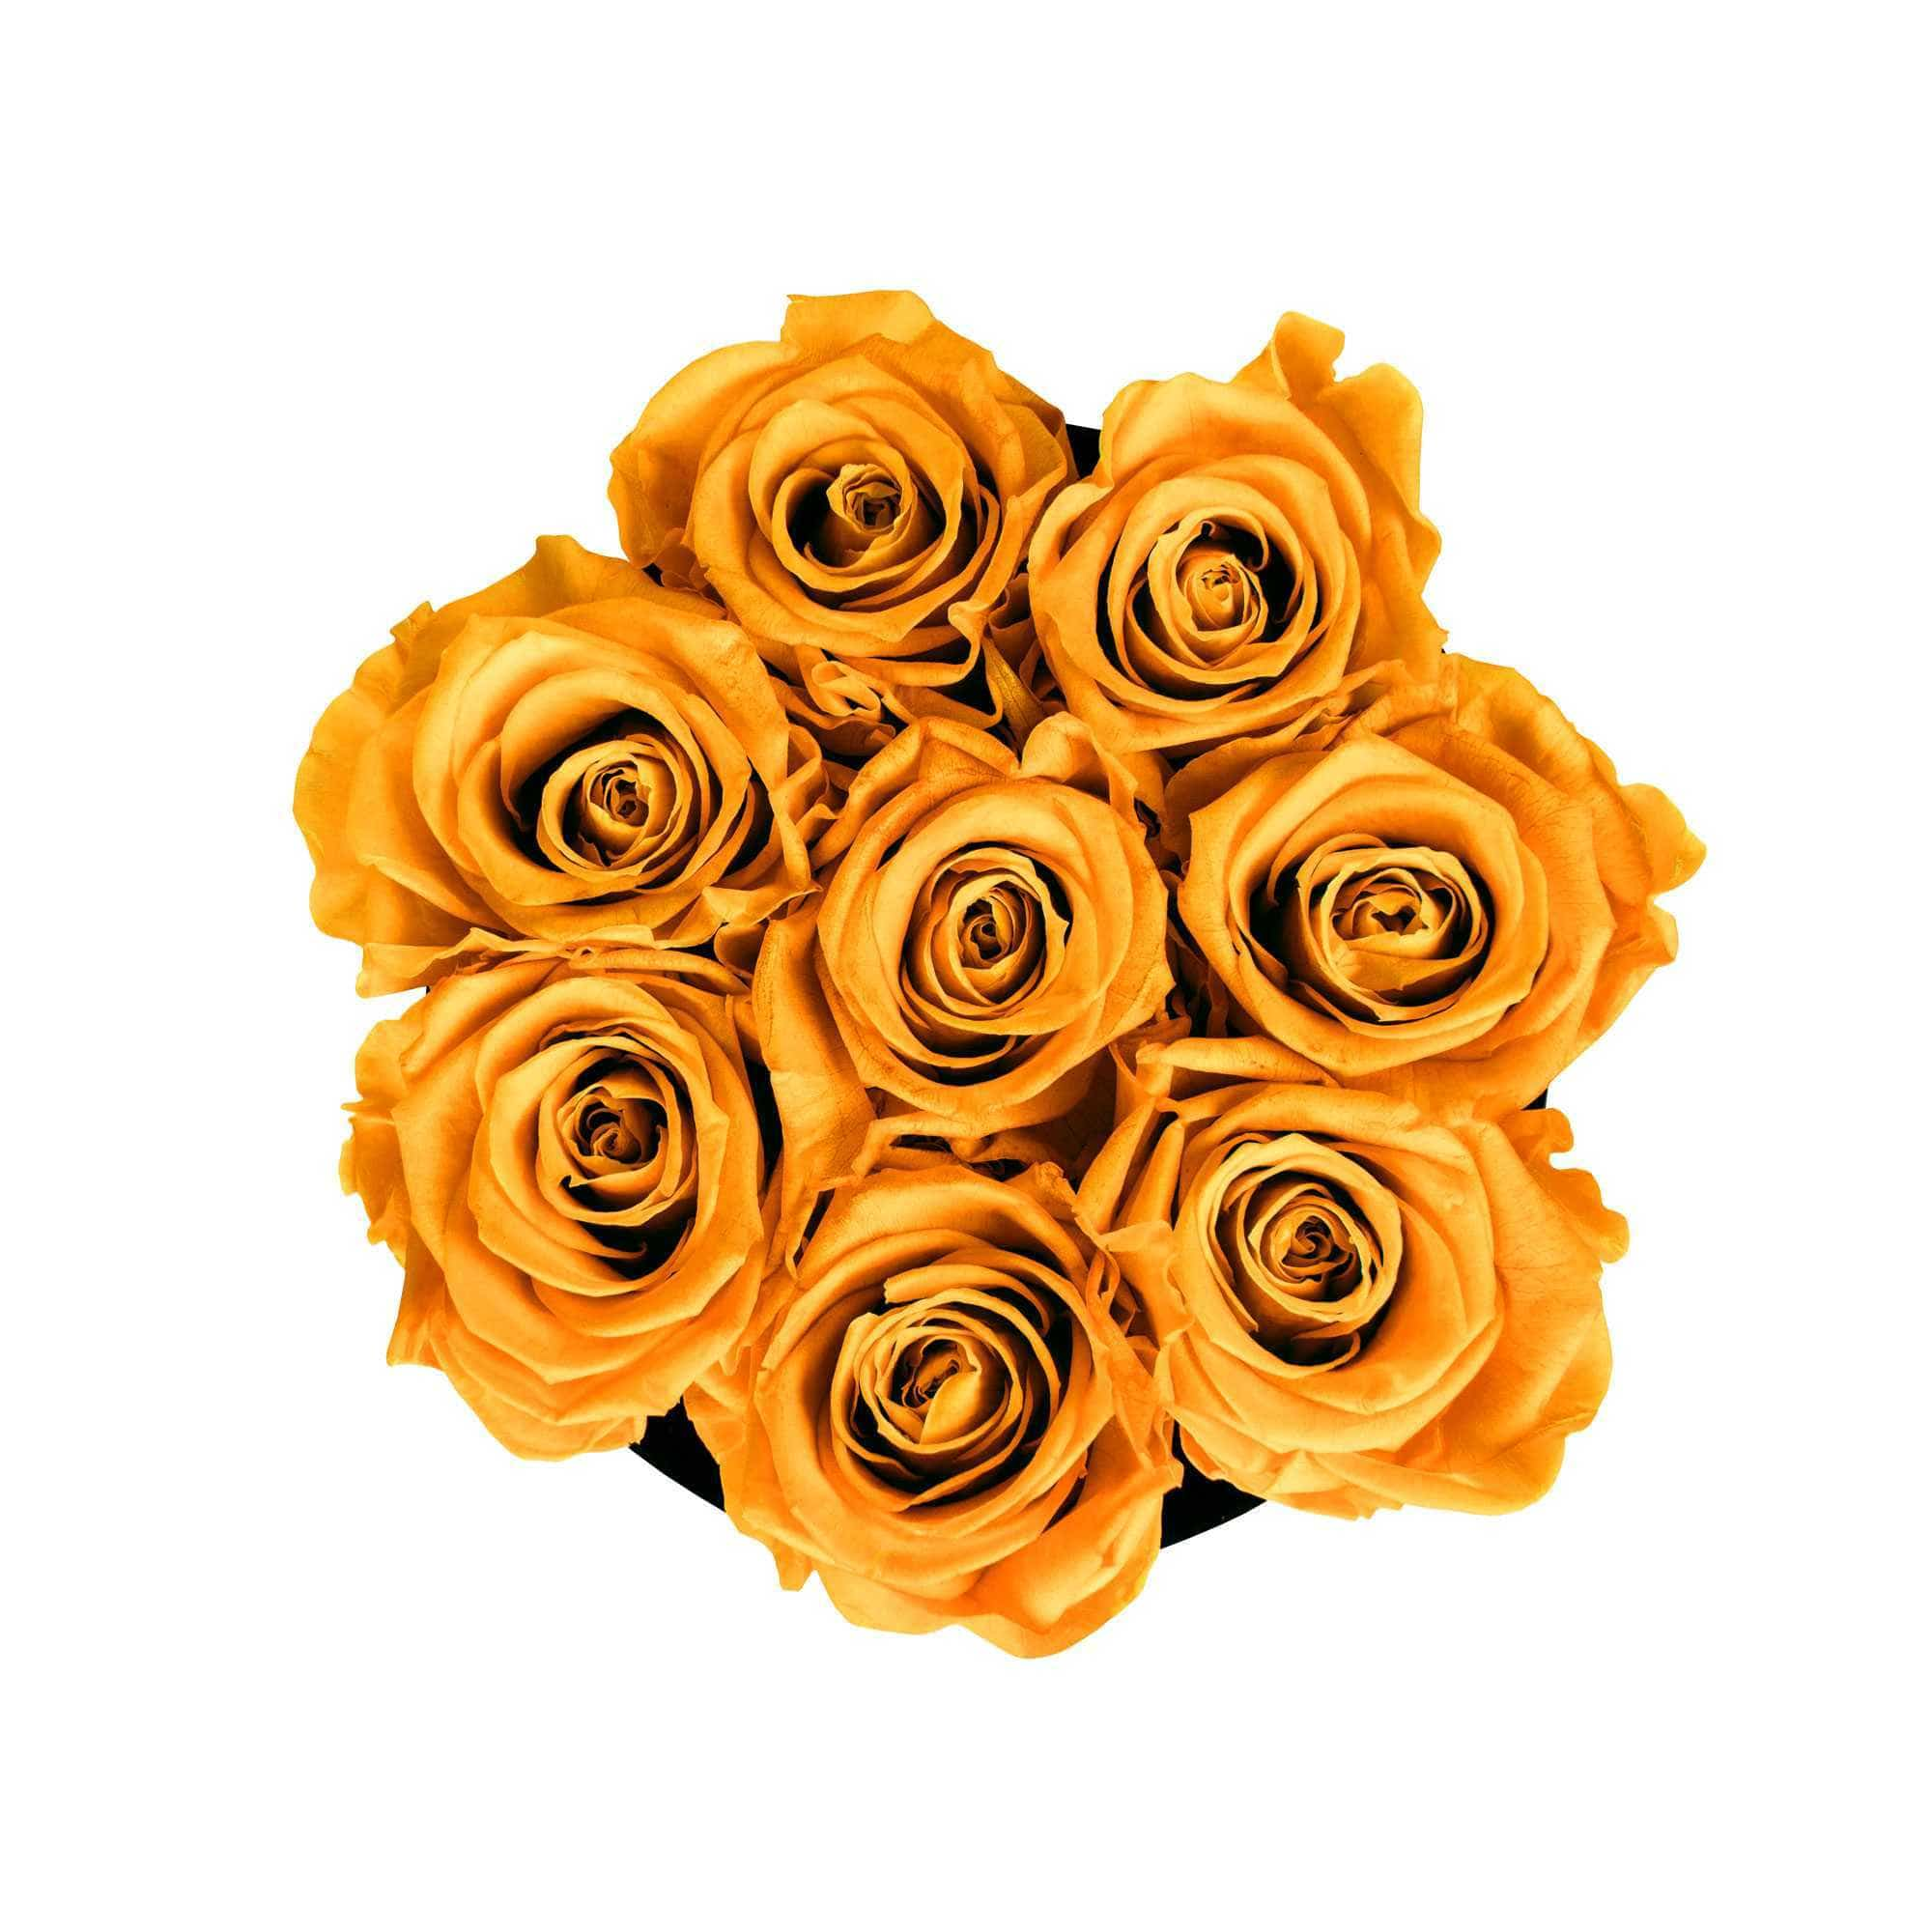 Klassische Medium [product_type] Goldblume  goldblume1.myshopify.com [variant_title] [option1] [option2] [option3]